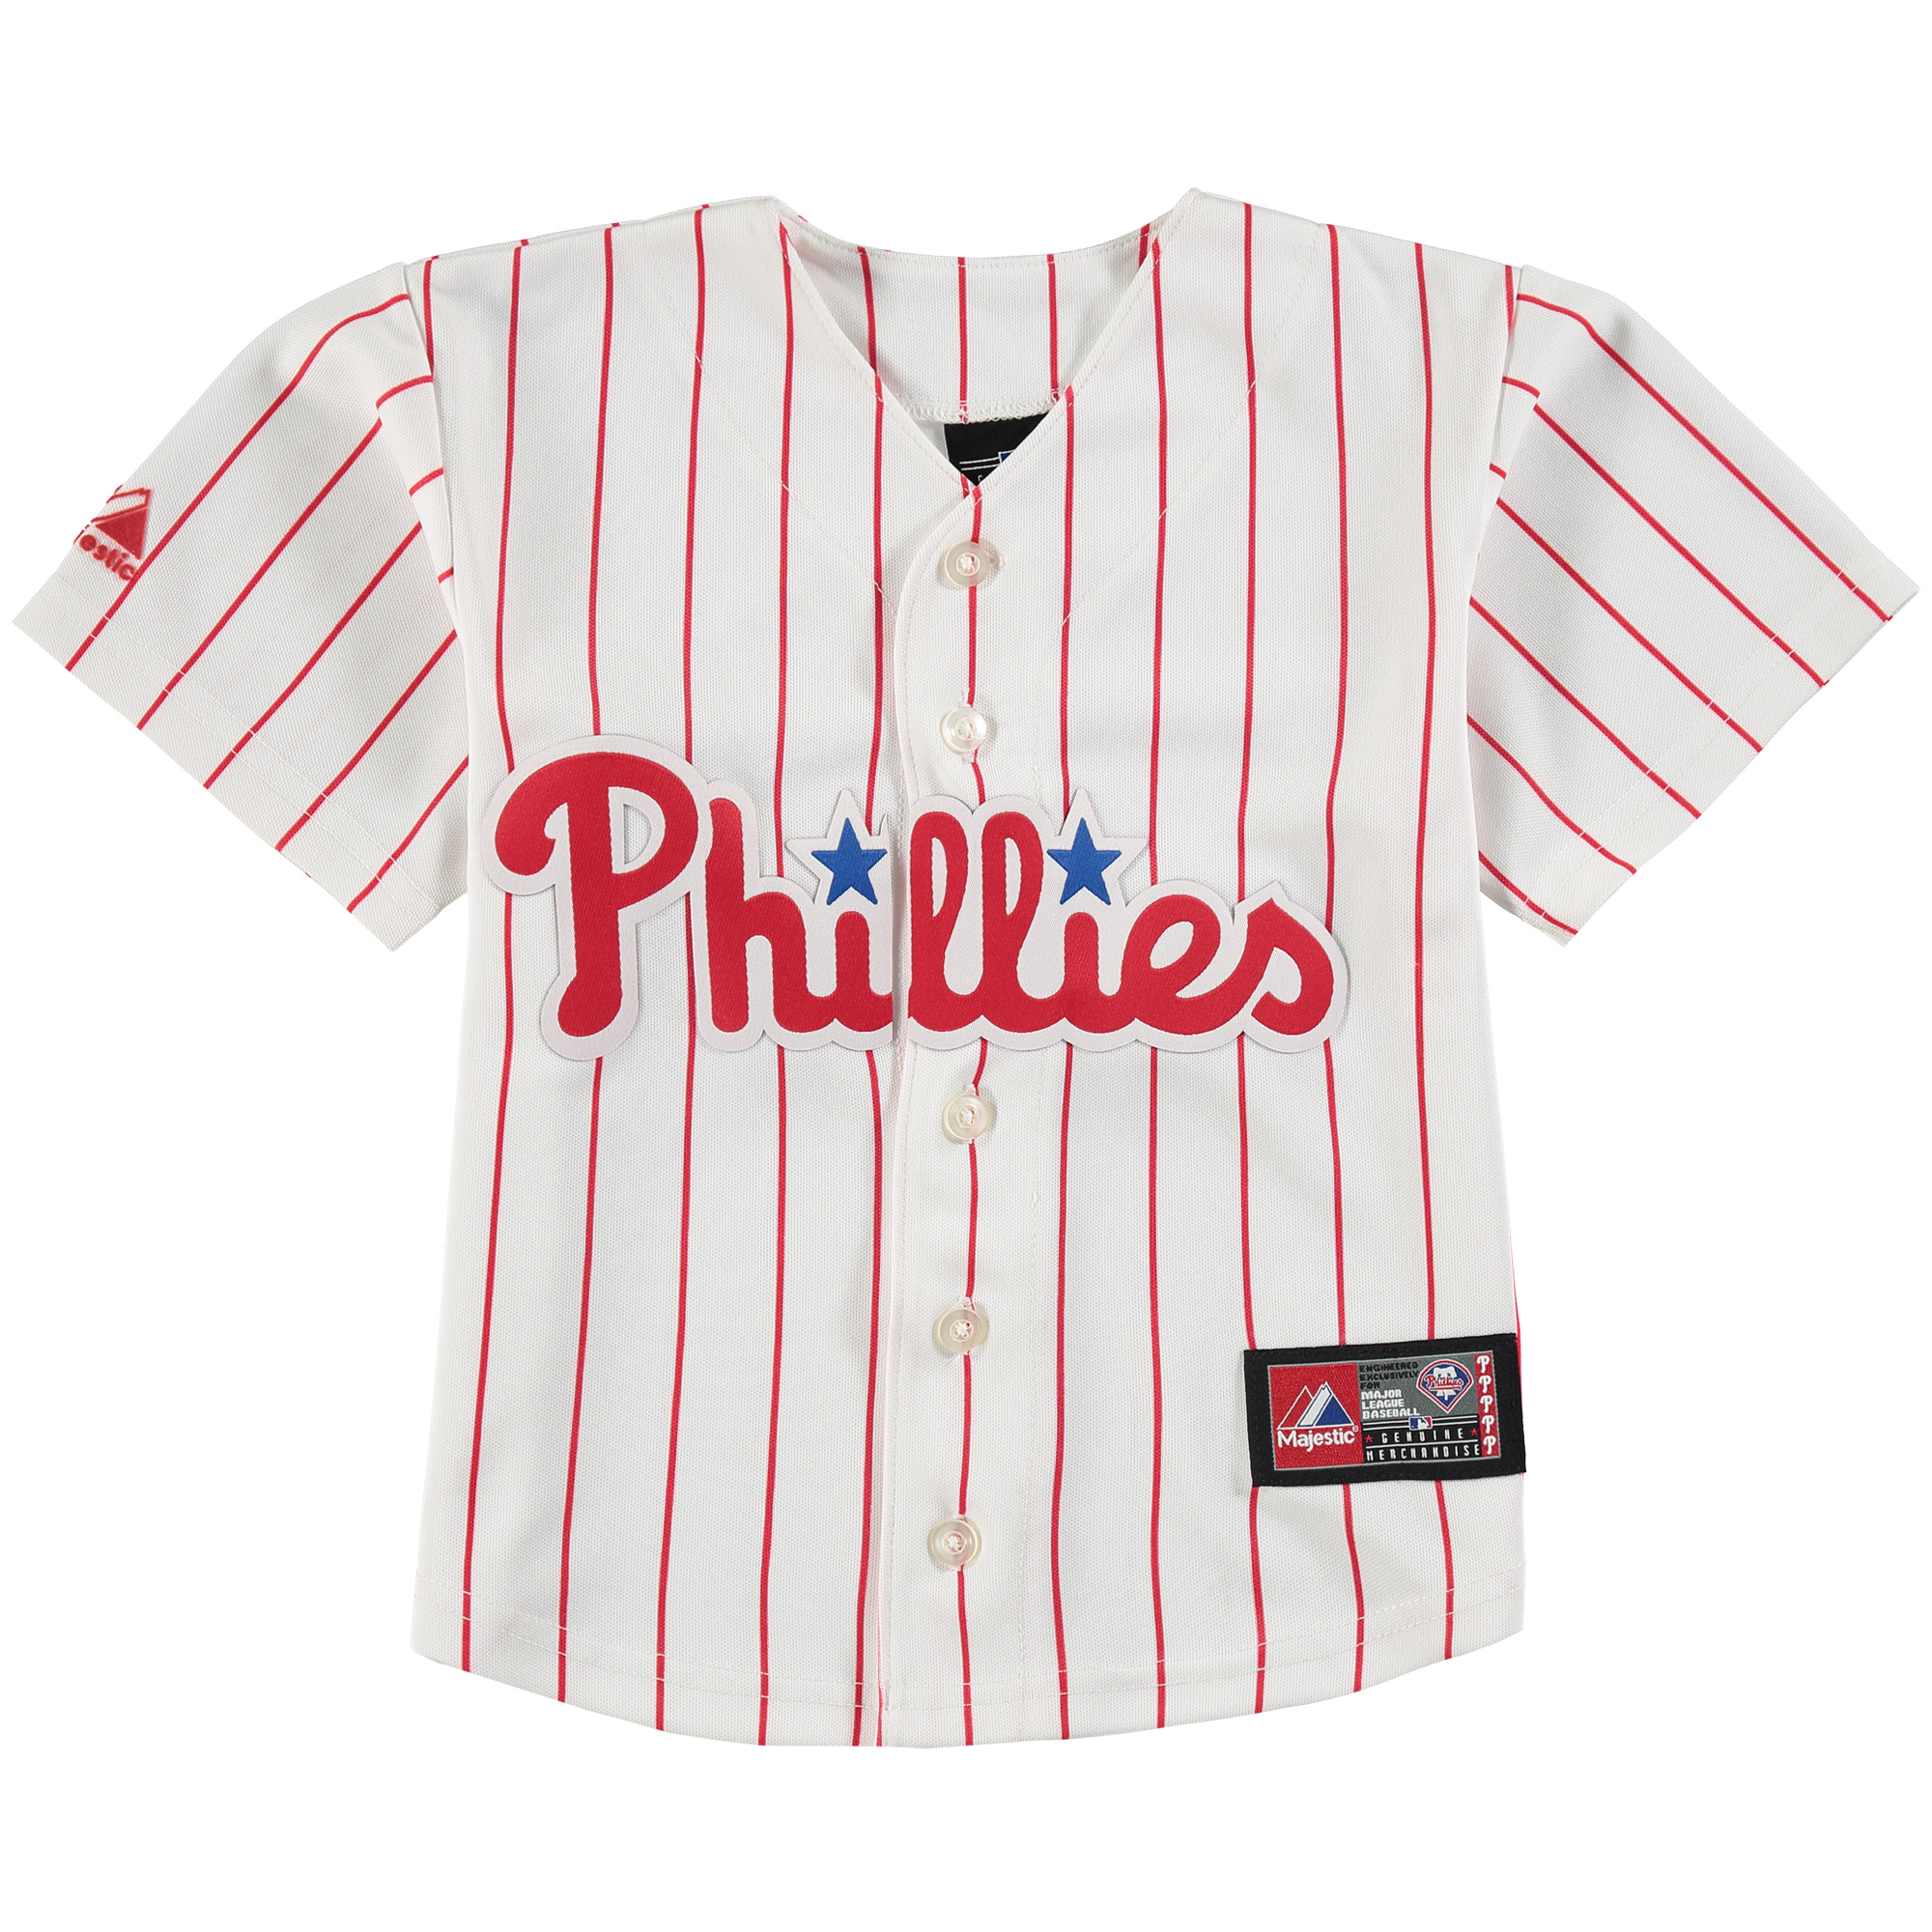 Philadelphia Phillies Majestic Toddler Official Cool Base Jersey - White